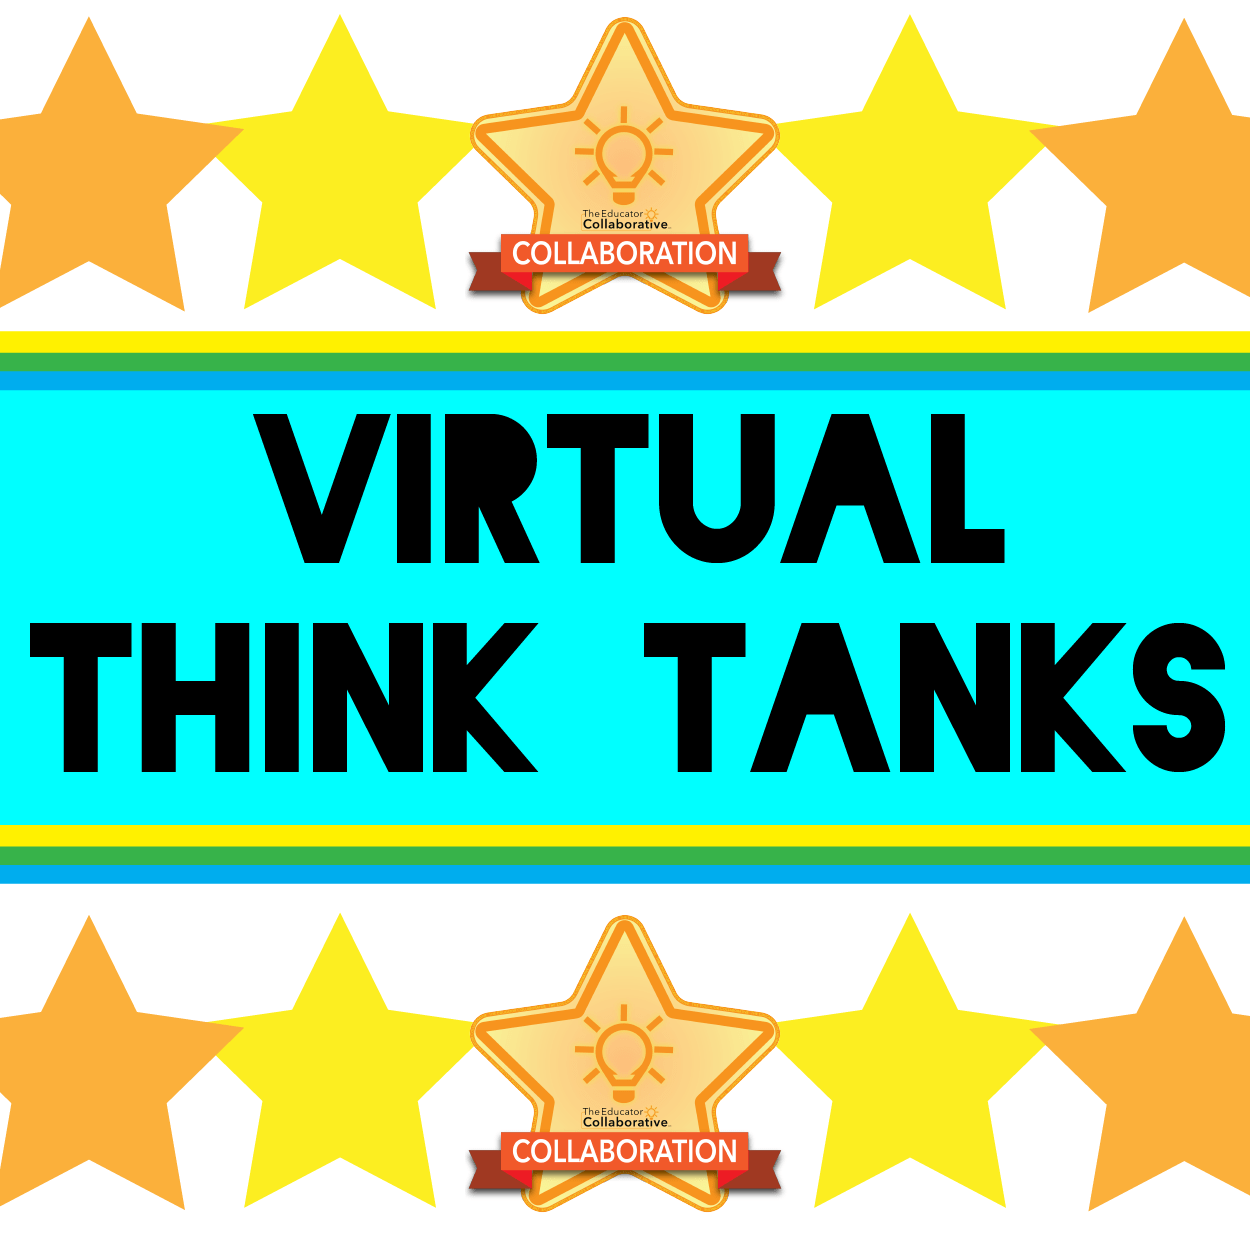 Virtual Think Tanks